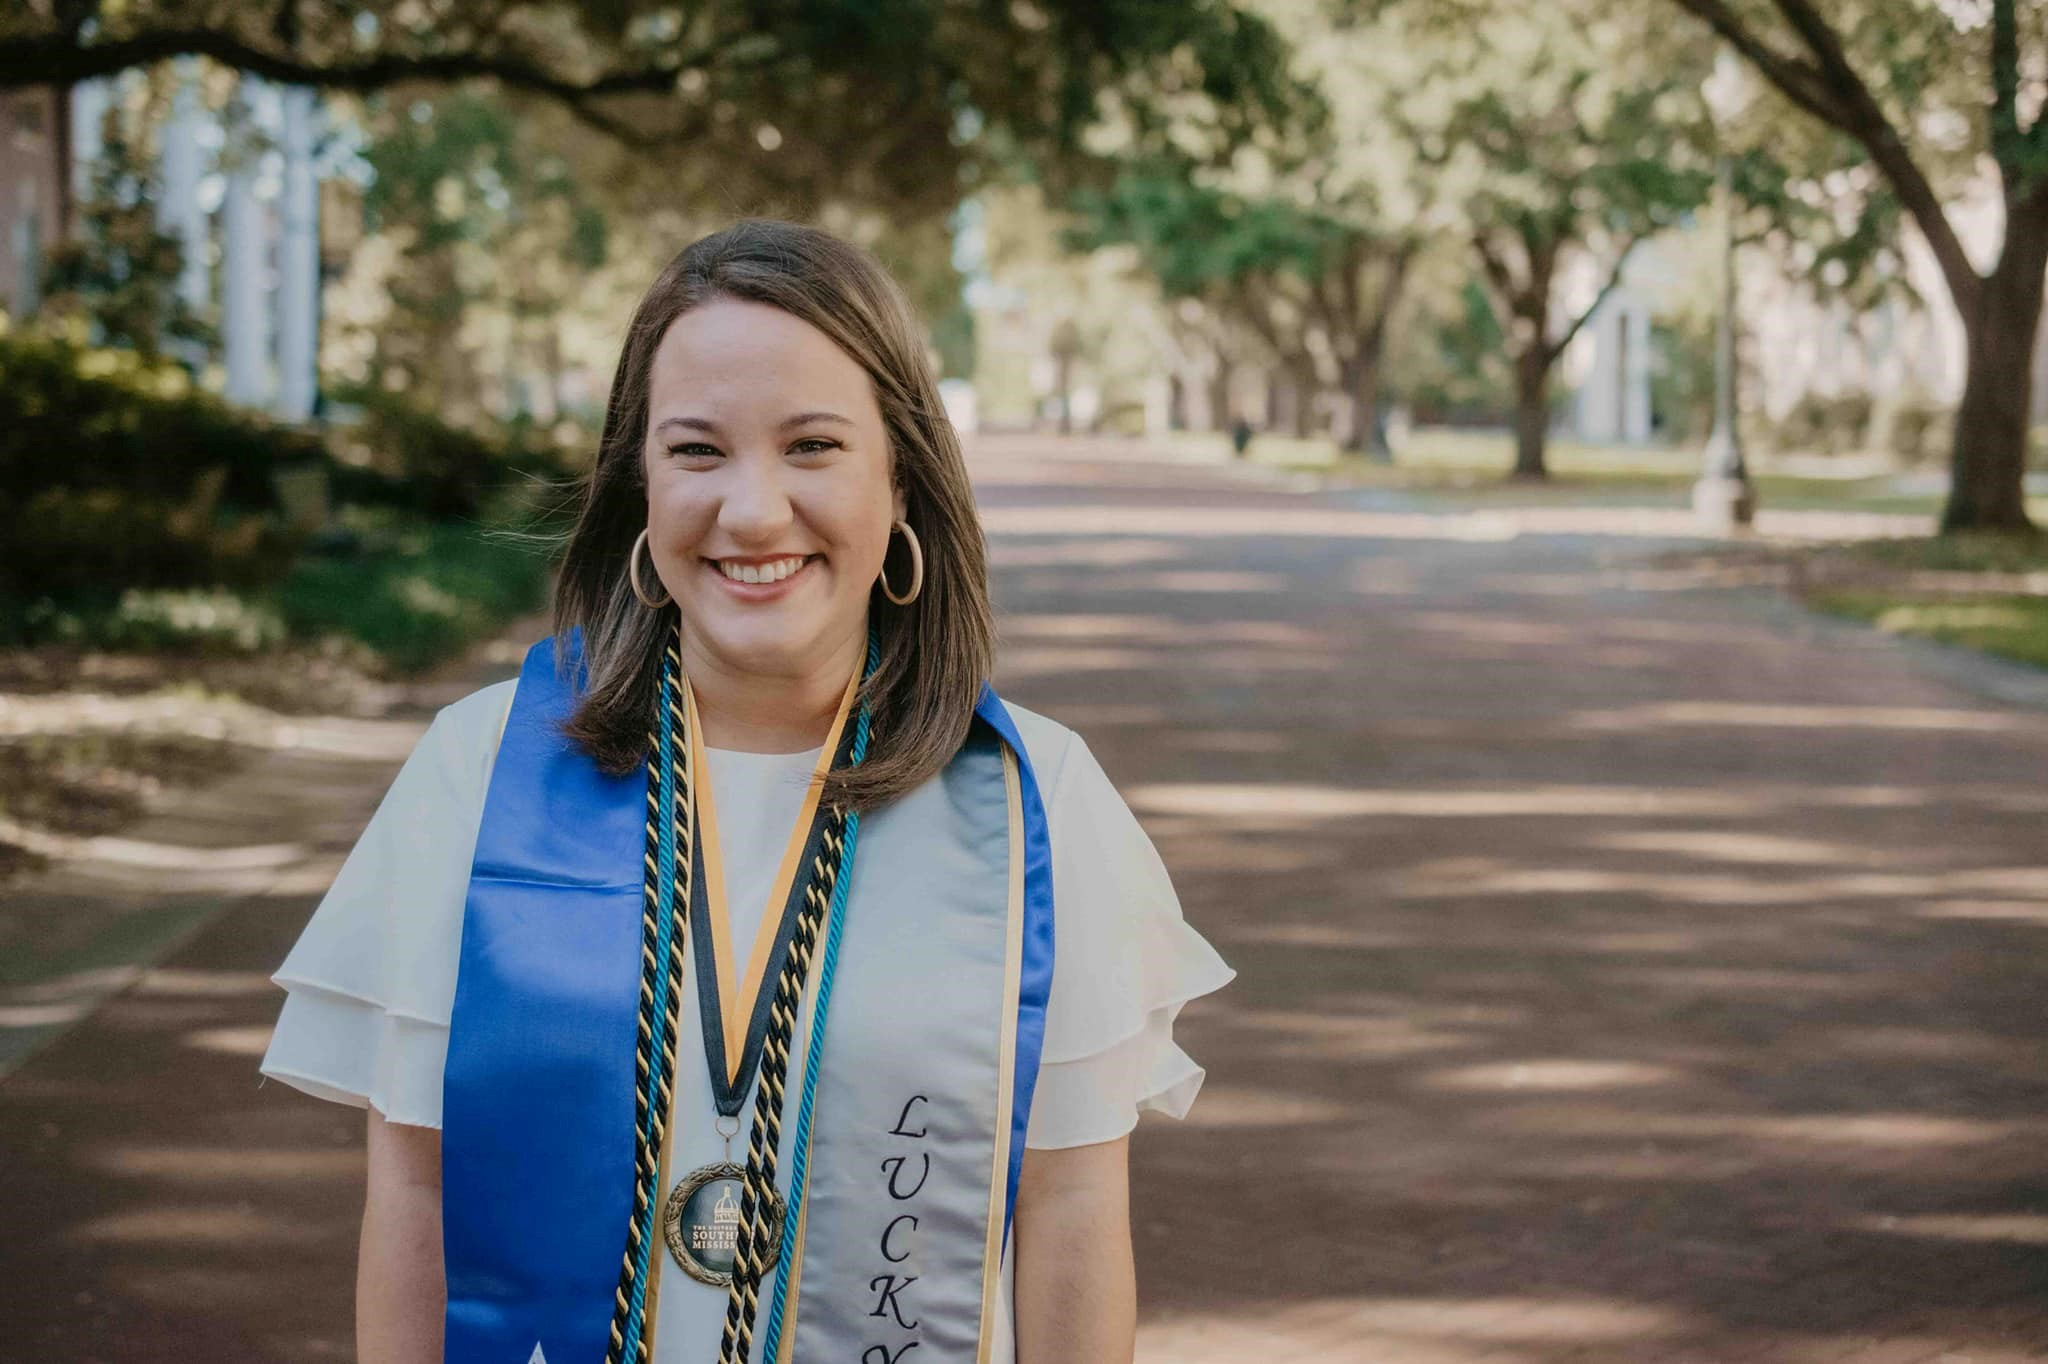 Adriana Rodriguez, a 2019 graduate of The University of Southern Mississippi (USM) College of Education and Humans Sciences' School of Education